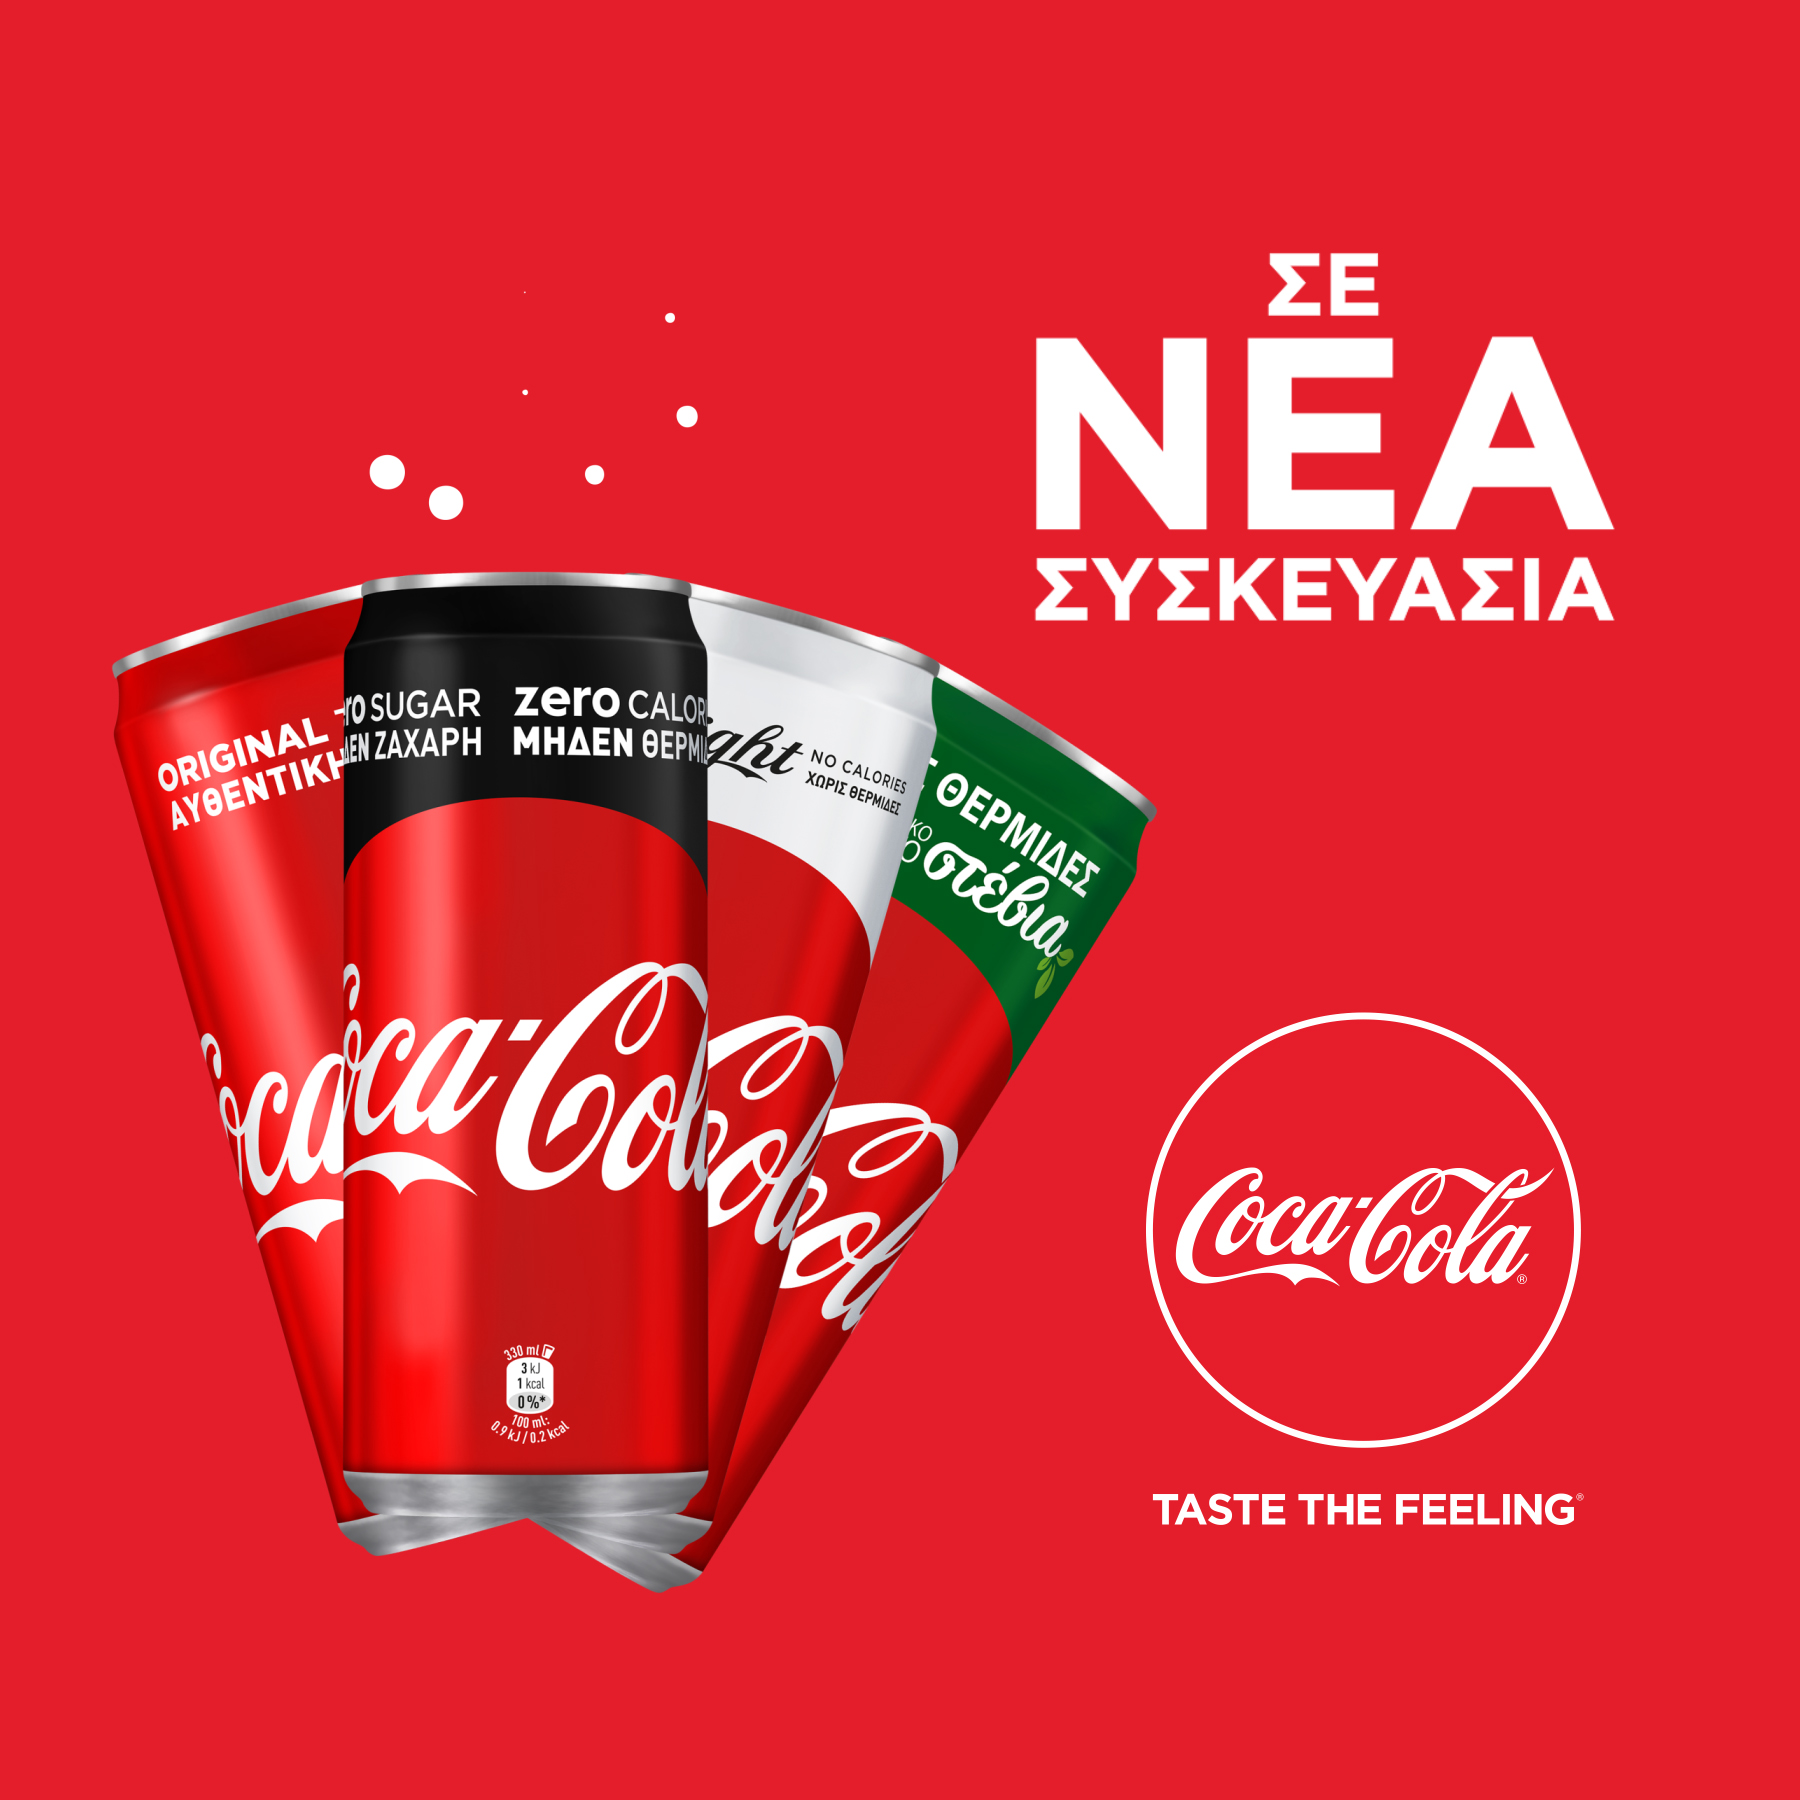 Coca – Cola Sleek trigger